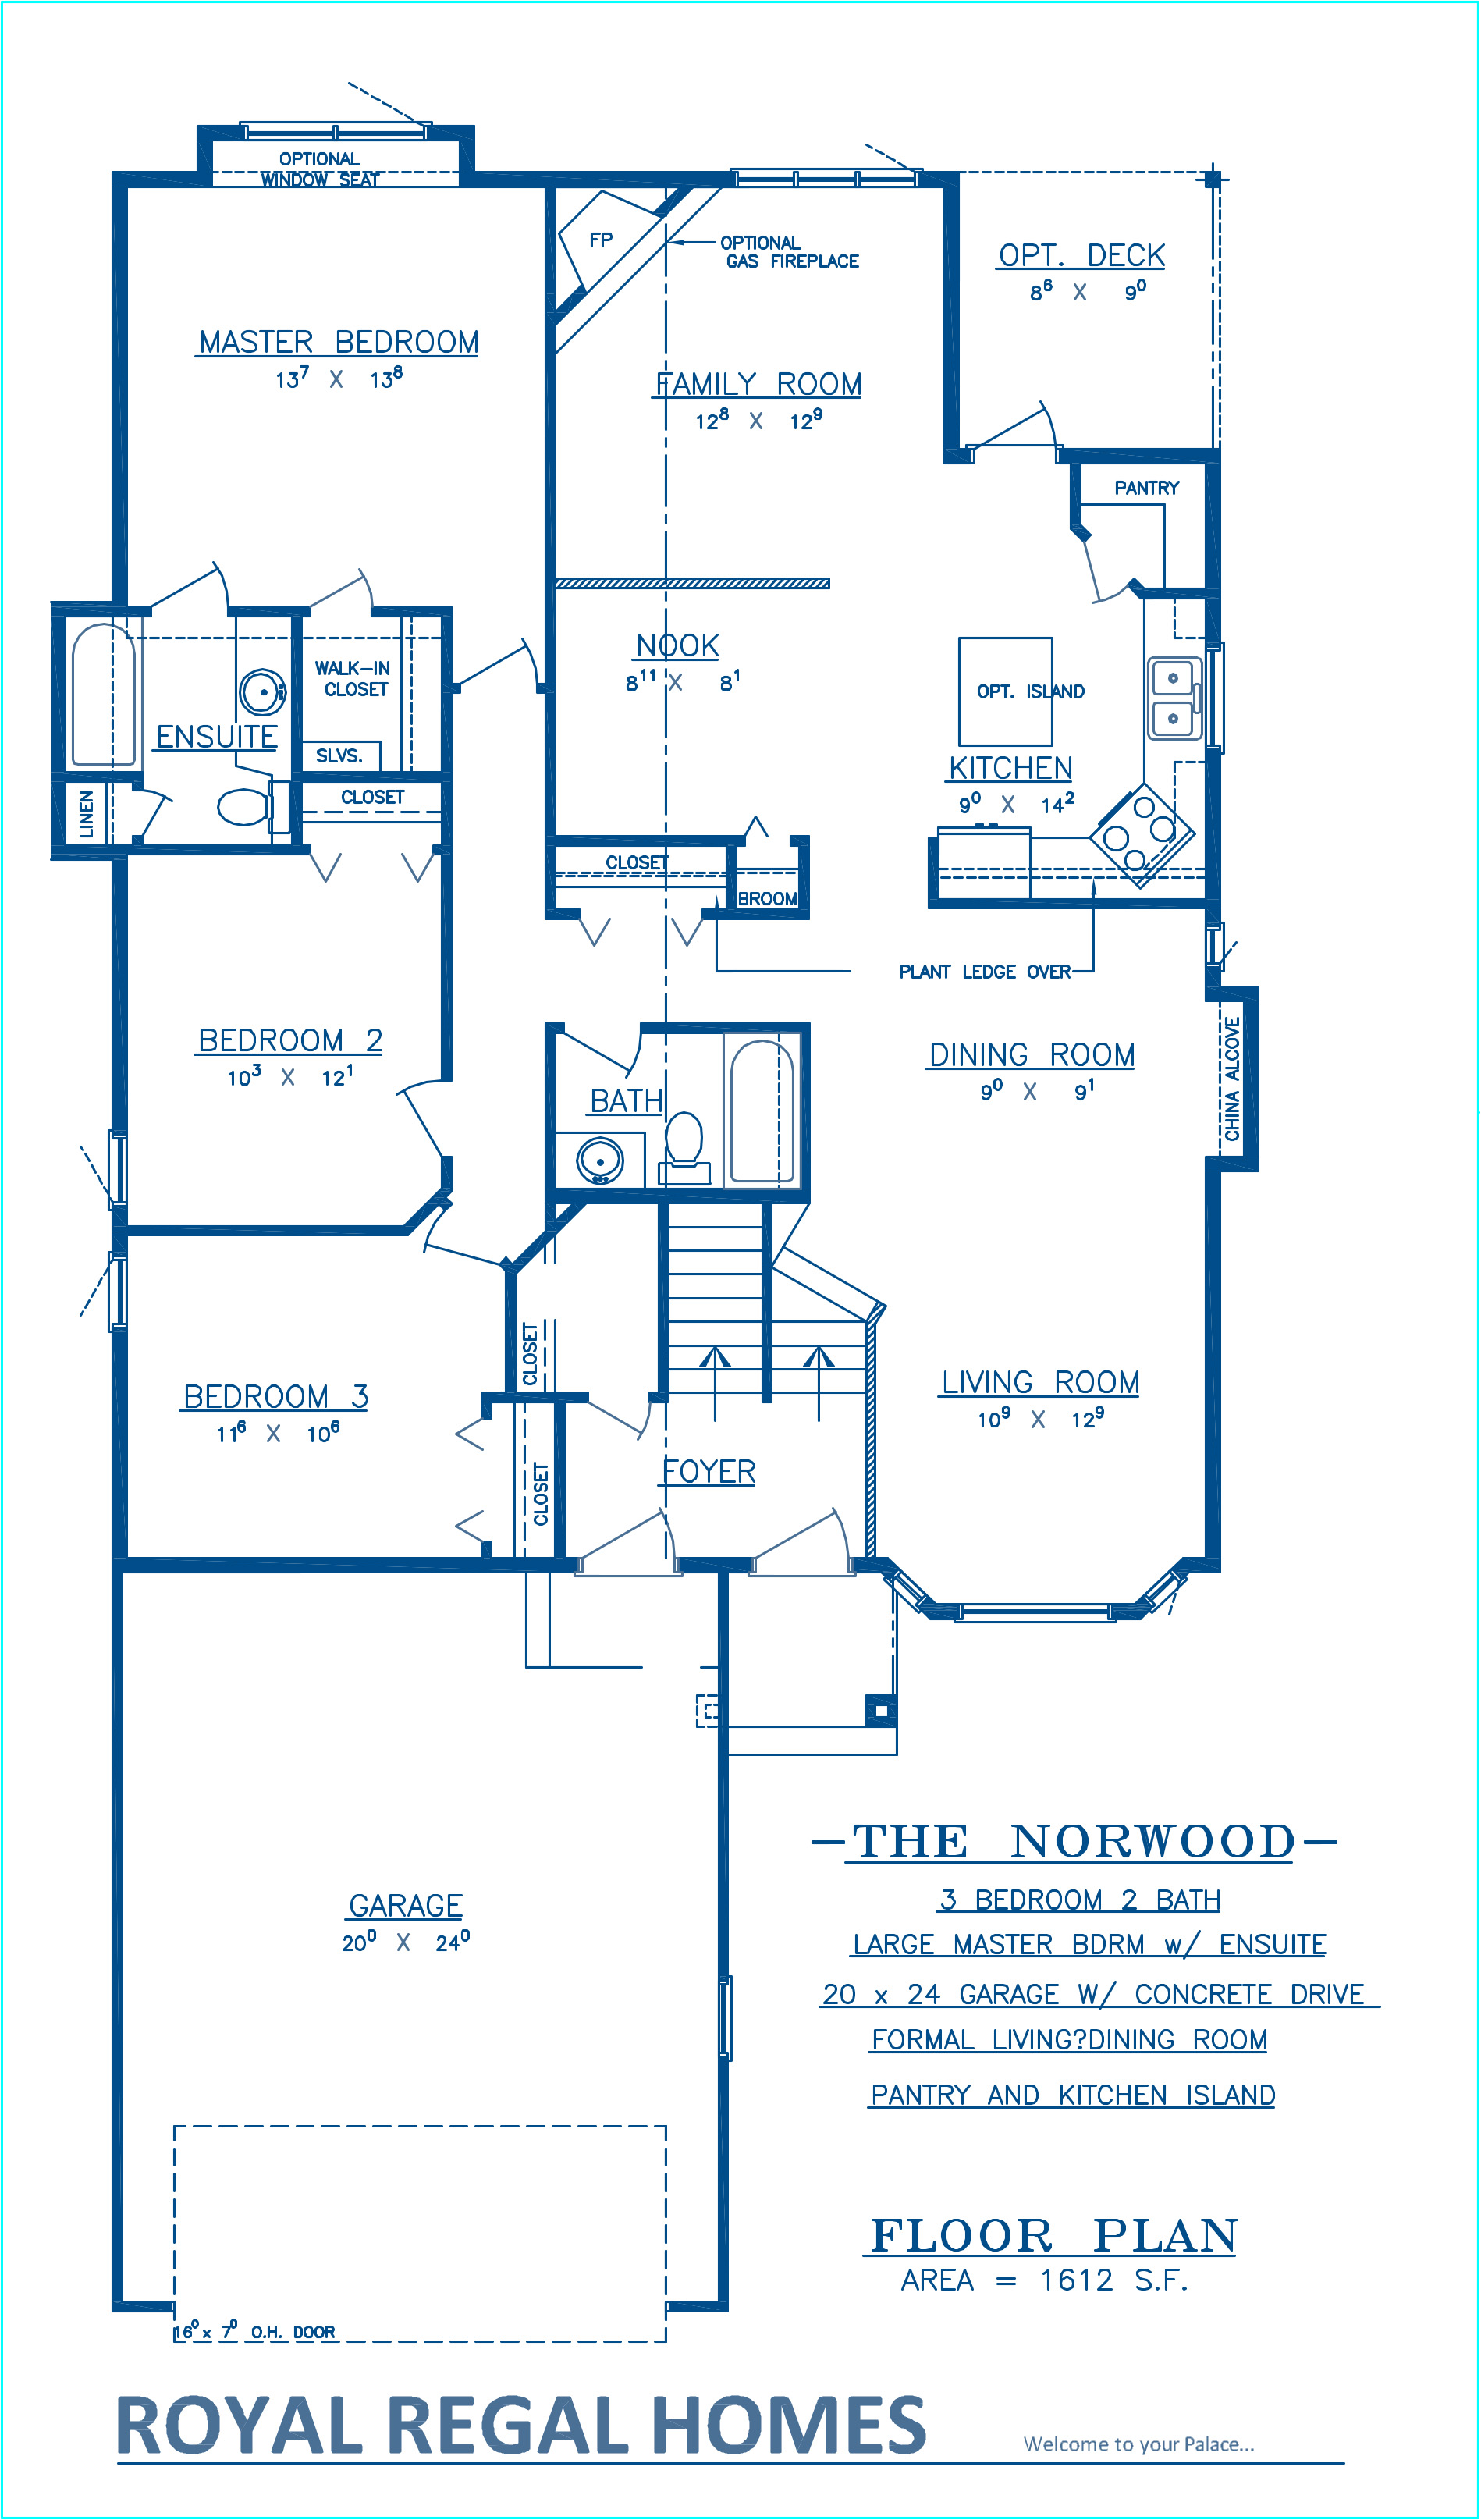 Norwood - Floor Plan